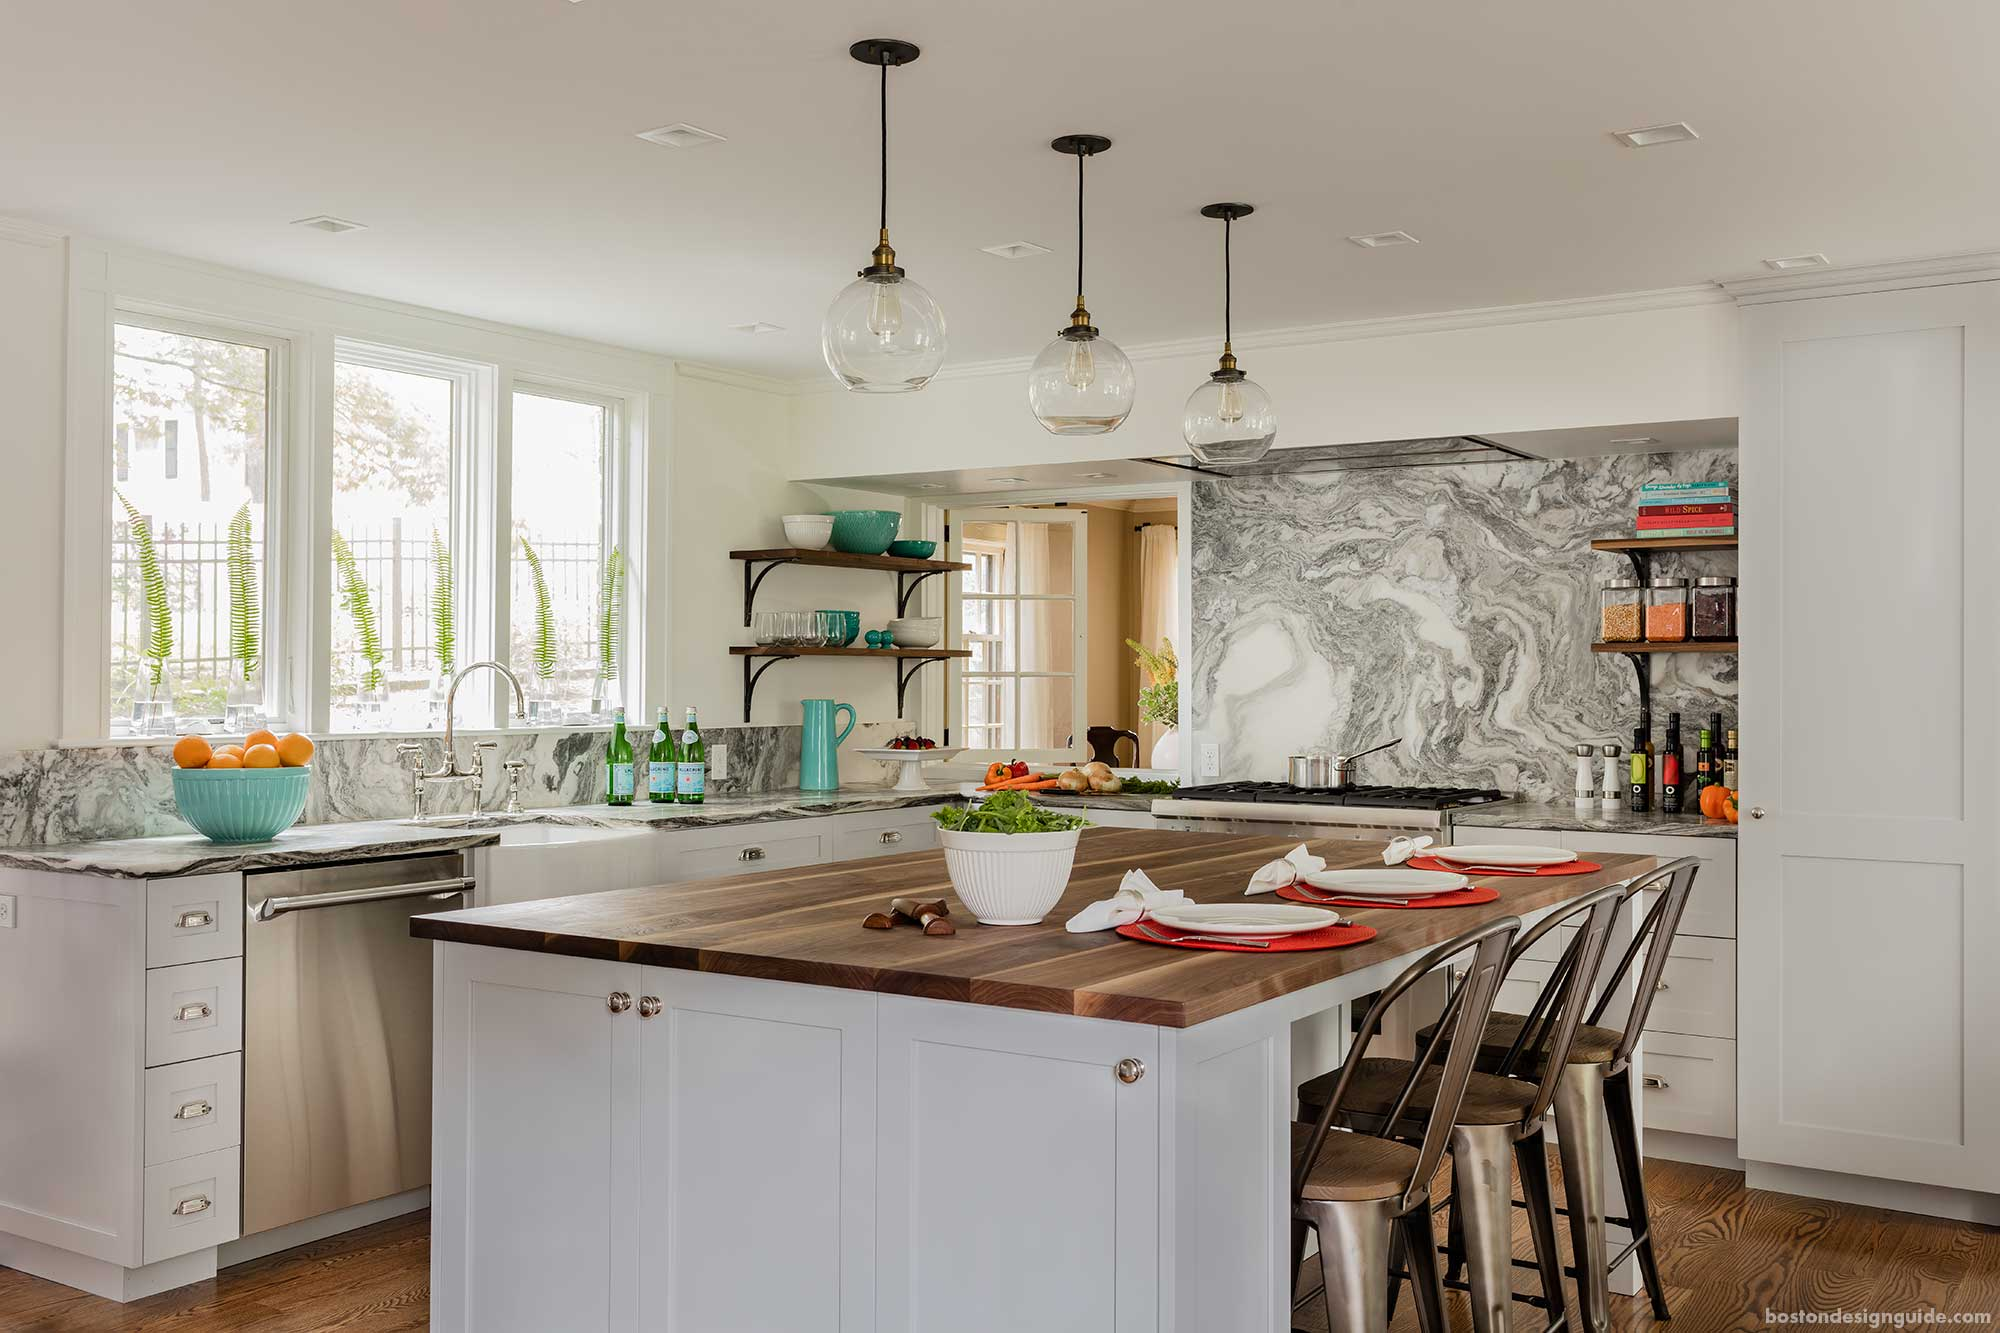 A 100 Year Old Boston Home Kitchen Remodel